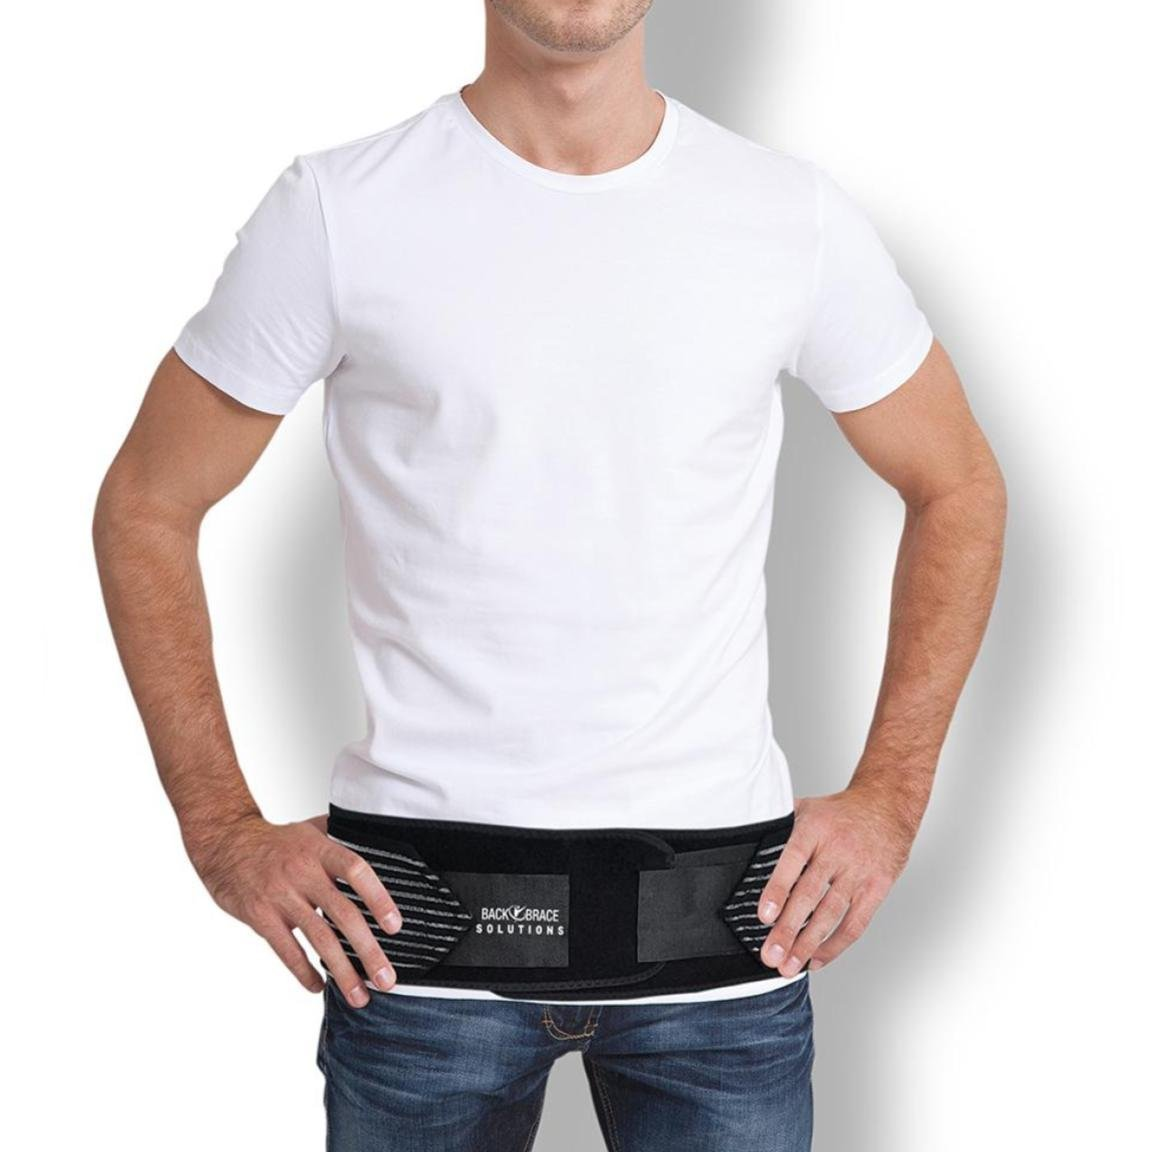 "SI Lock Support Belt - Sacroiliac SI Joint SI-LOC Belt for Sciatica Nerve Pain. Adjustable Compression Wrap Brace for Hip, Lower Back, Lumbar, Herniated Disk, Pelvic Instability (30"" - 45"" Hip Size)"